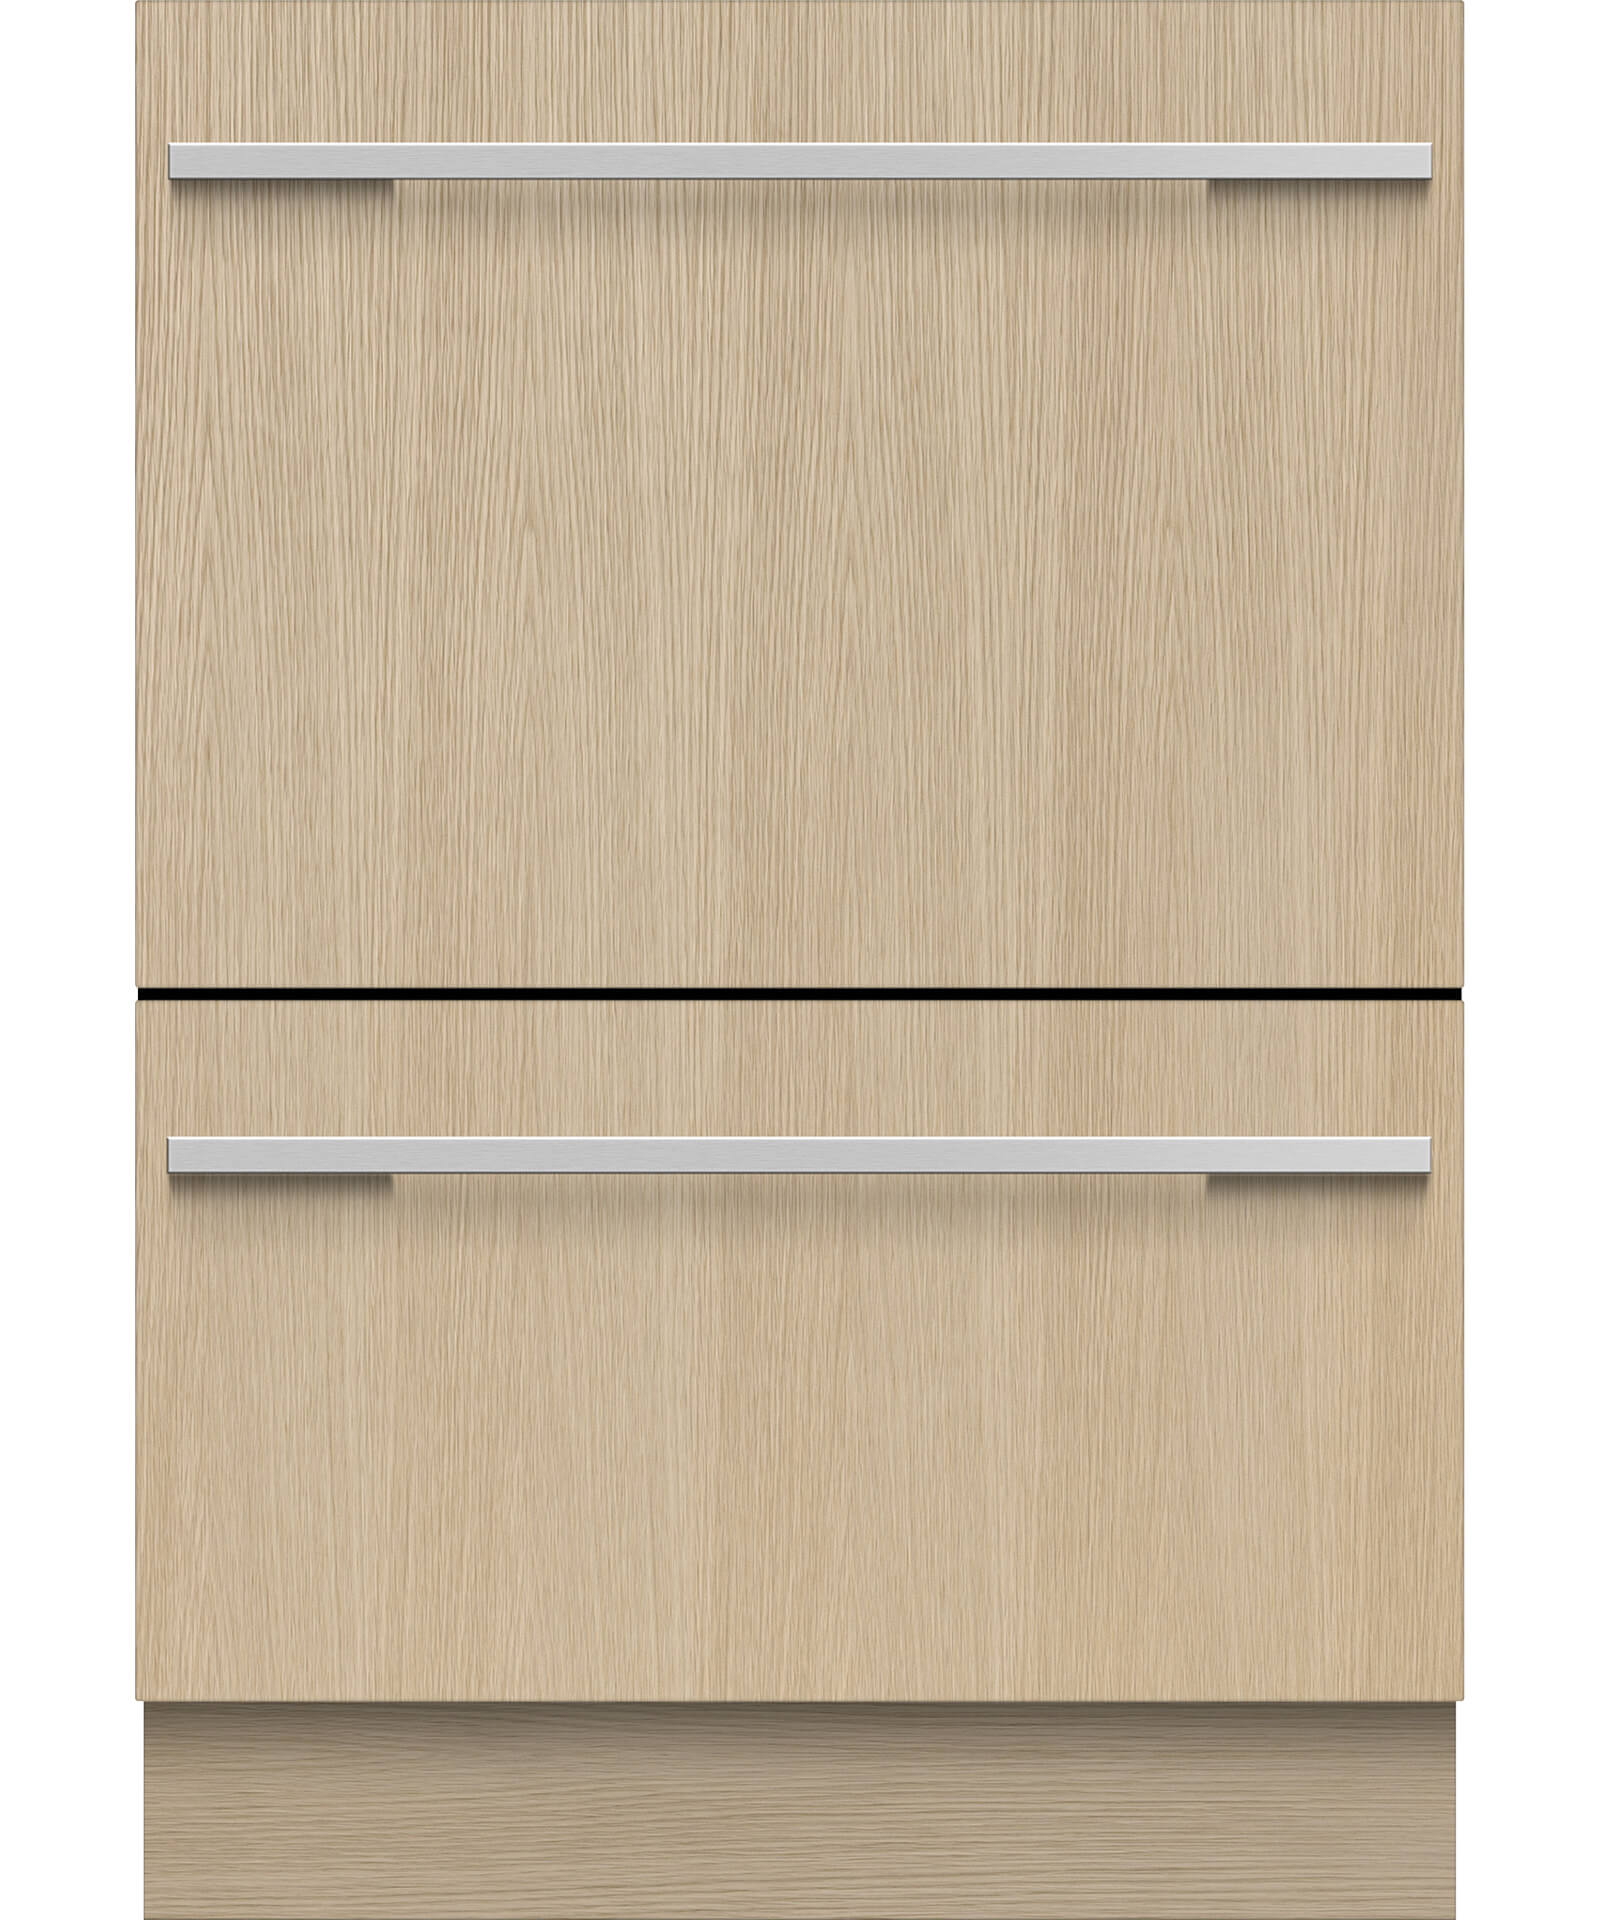 DD24DTI9_N   Tall Panel Ready Double DishDrawer™ Dishwasher Incl Sanitize,  Extra Dry And Full